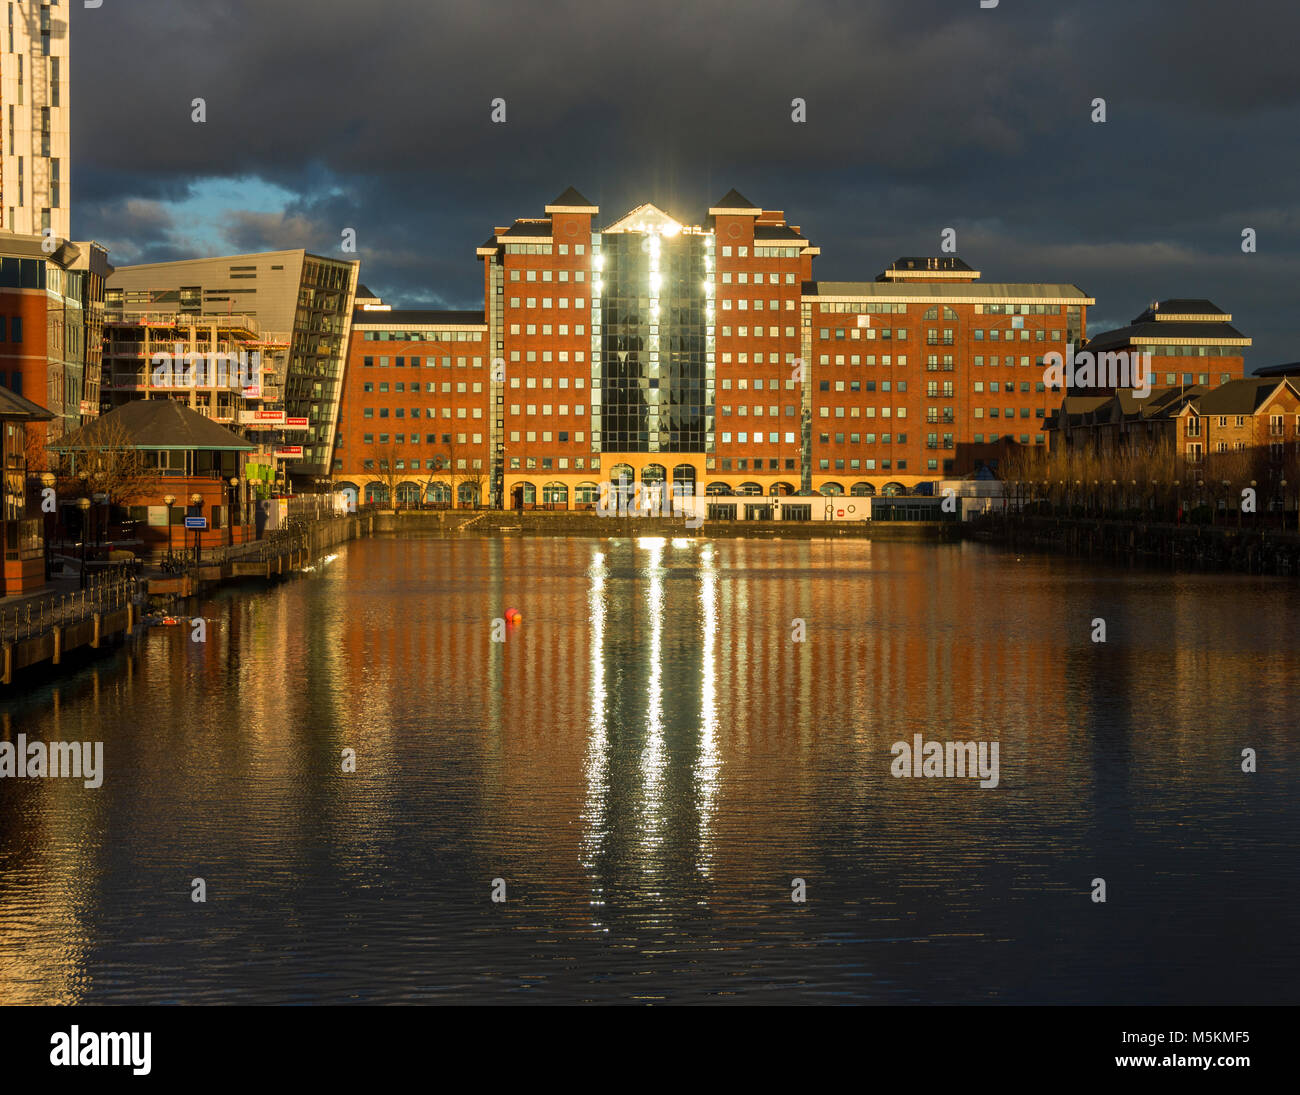 Late afternoon sun on the Anchorage Quay office buildings, Erie Basin, Salford Quays, Manchester, UK - Stock Image